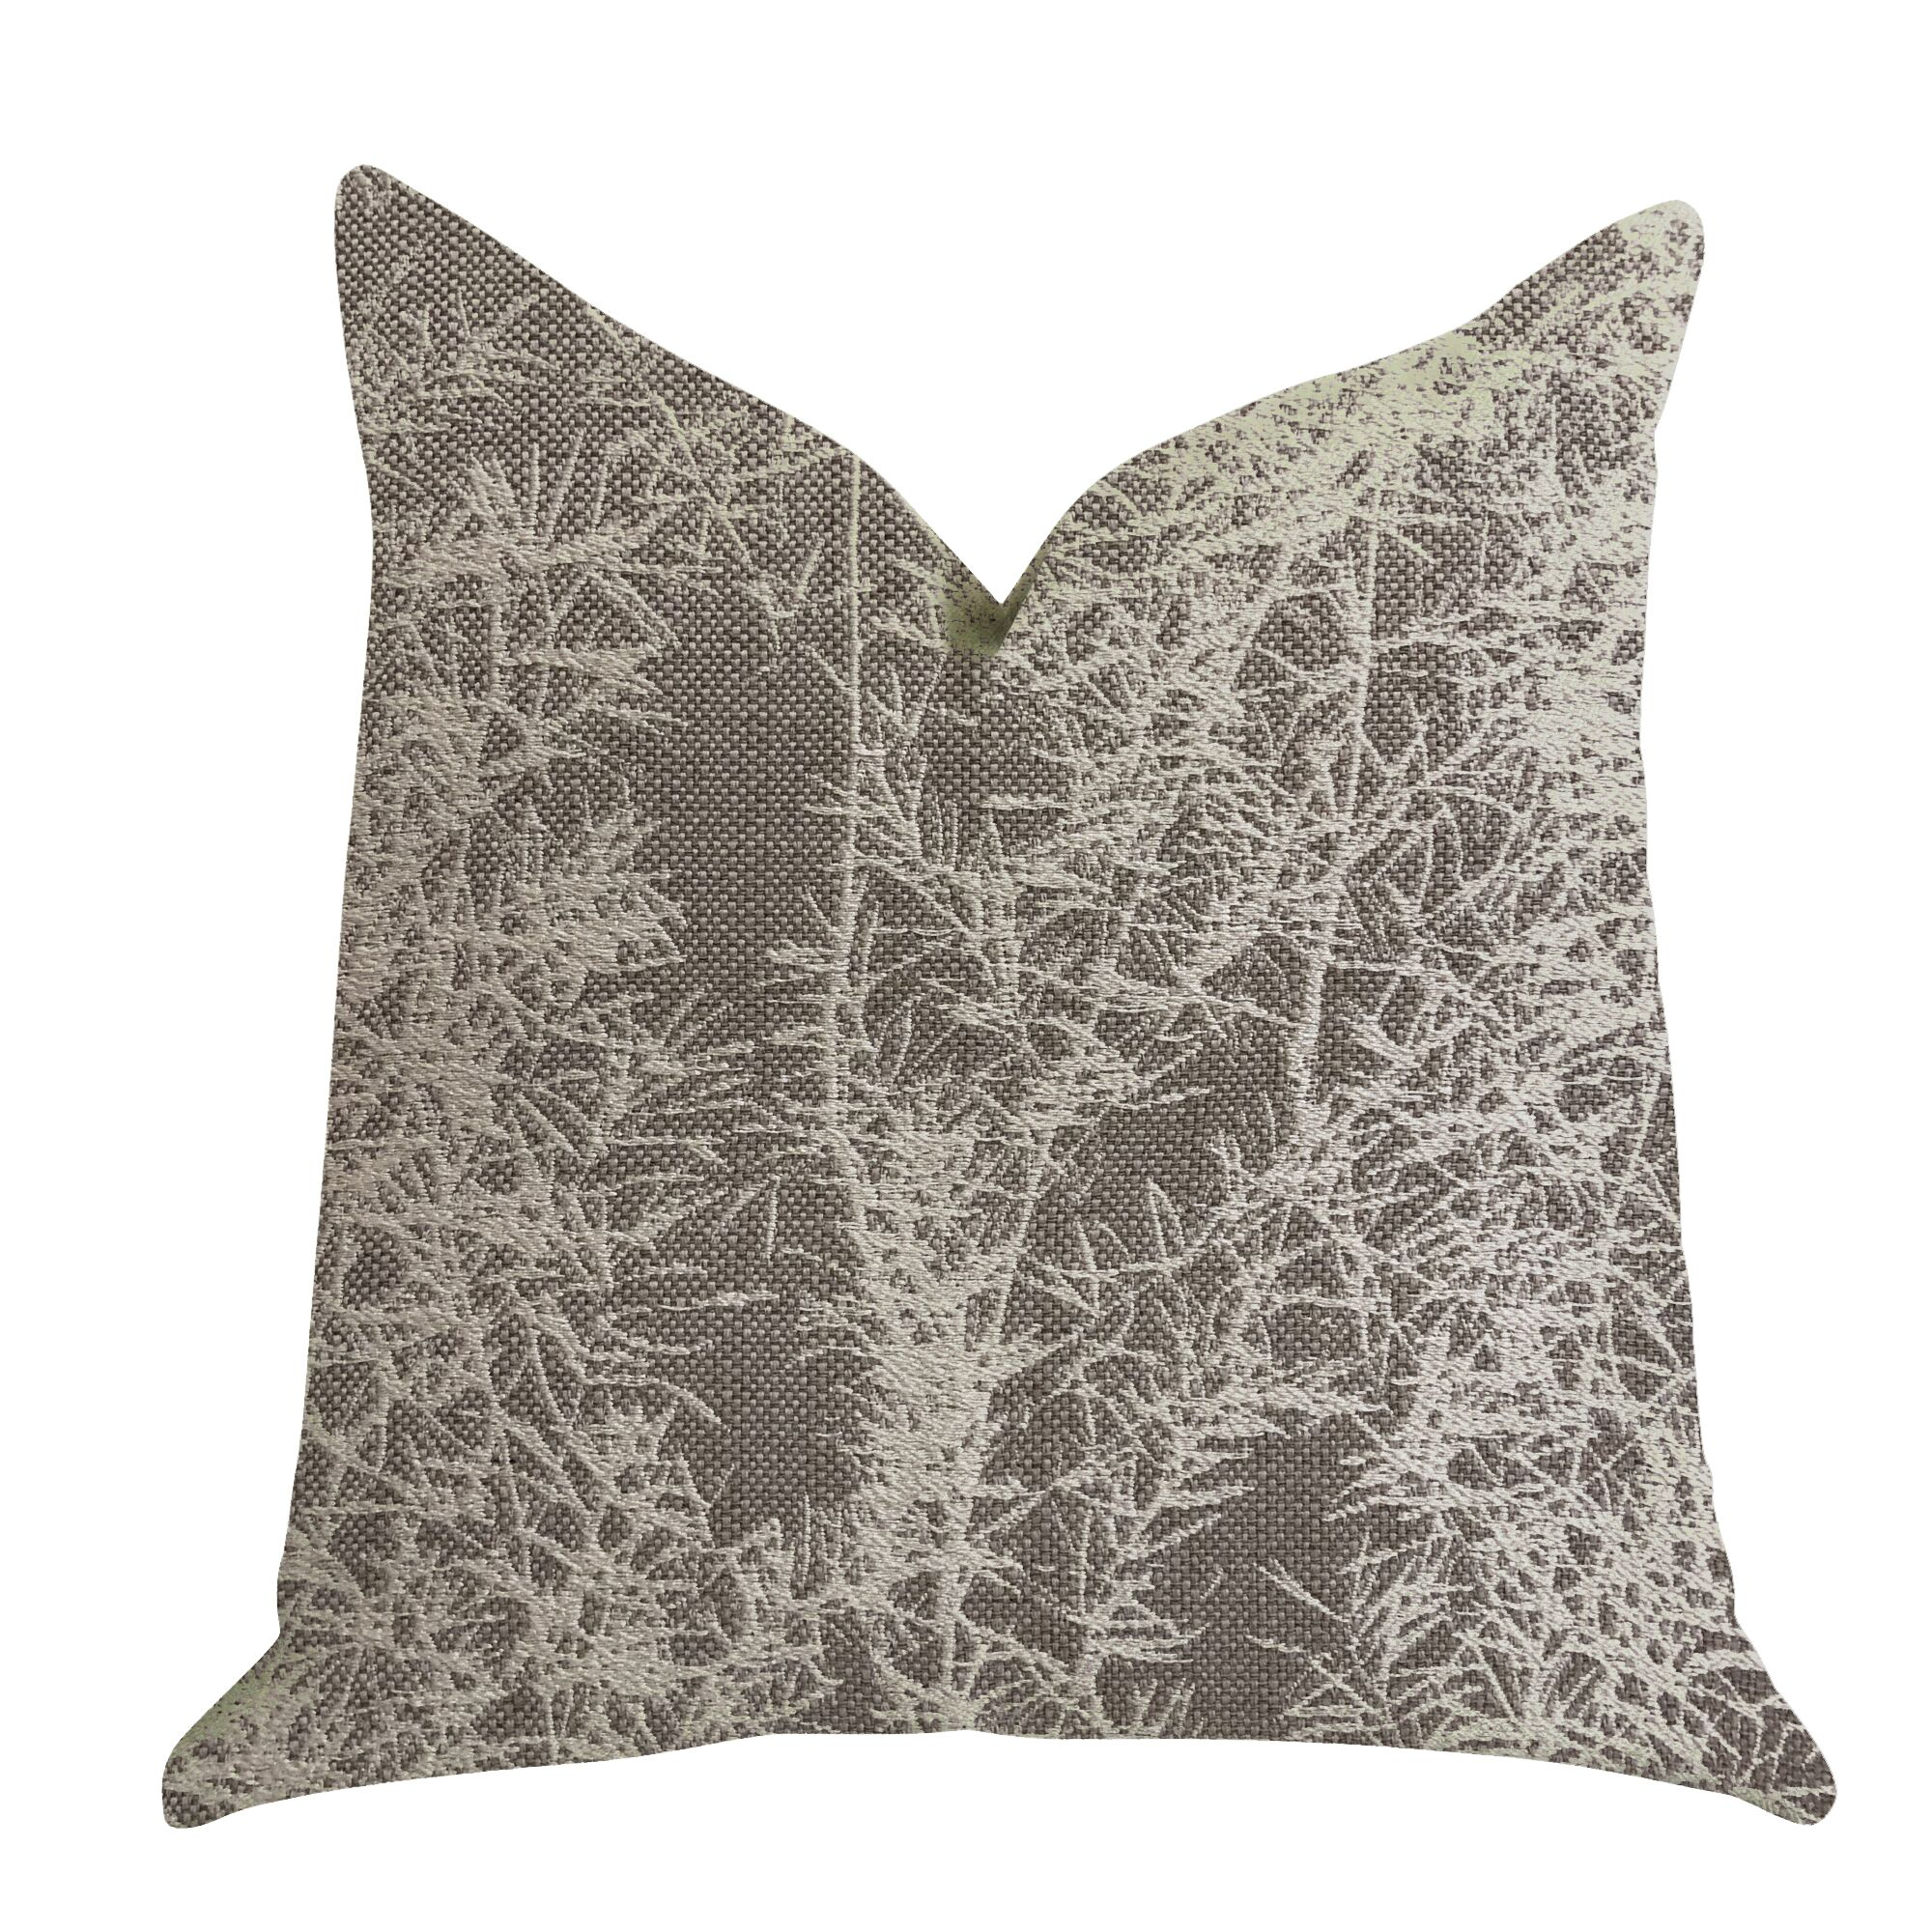 DeMastro Luxury Pillow Size: 12